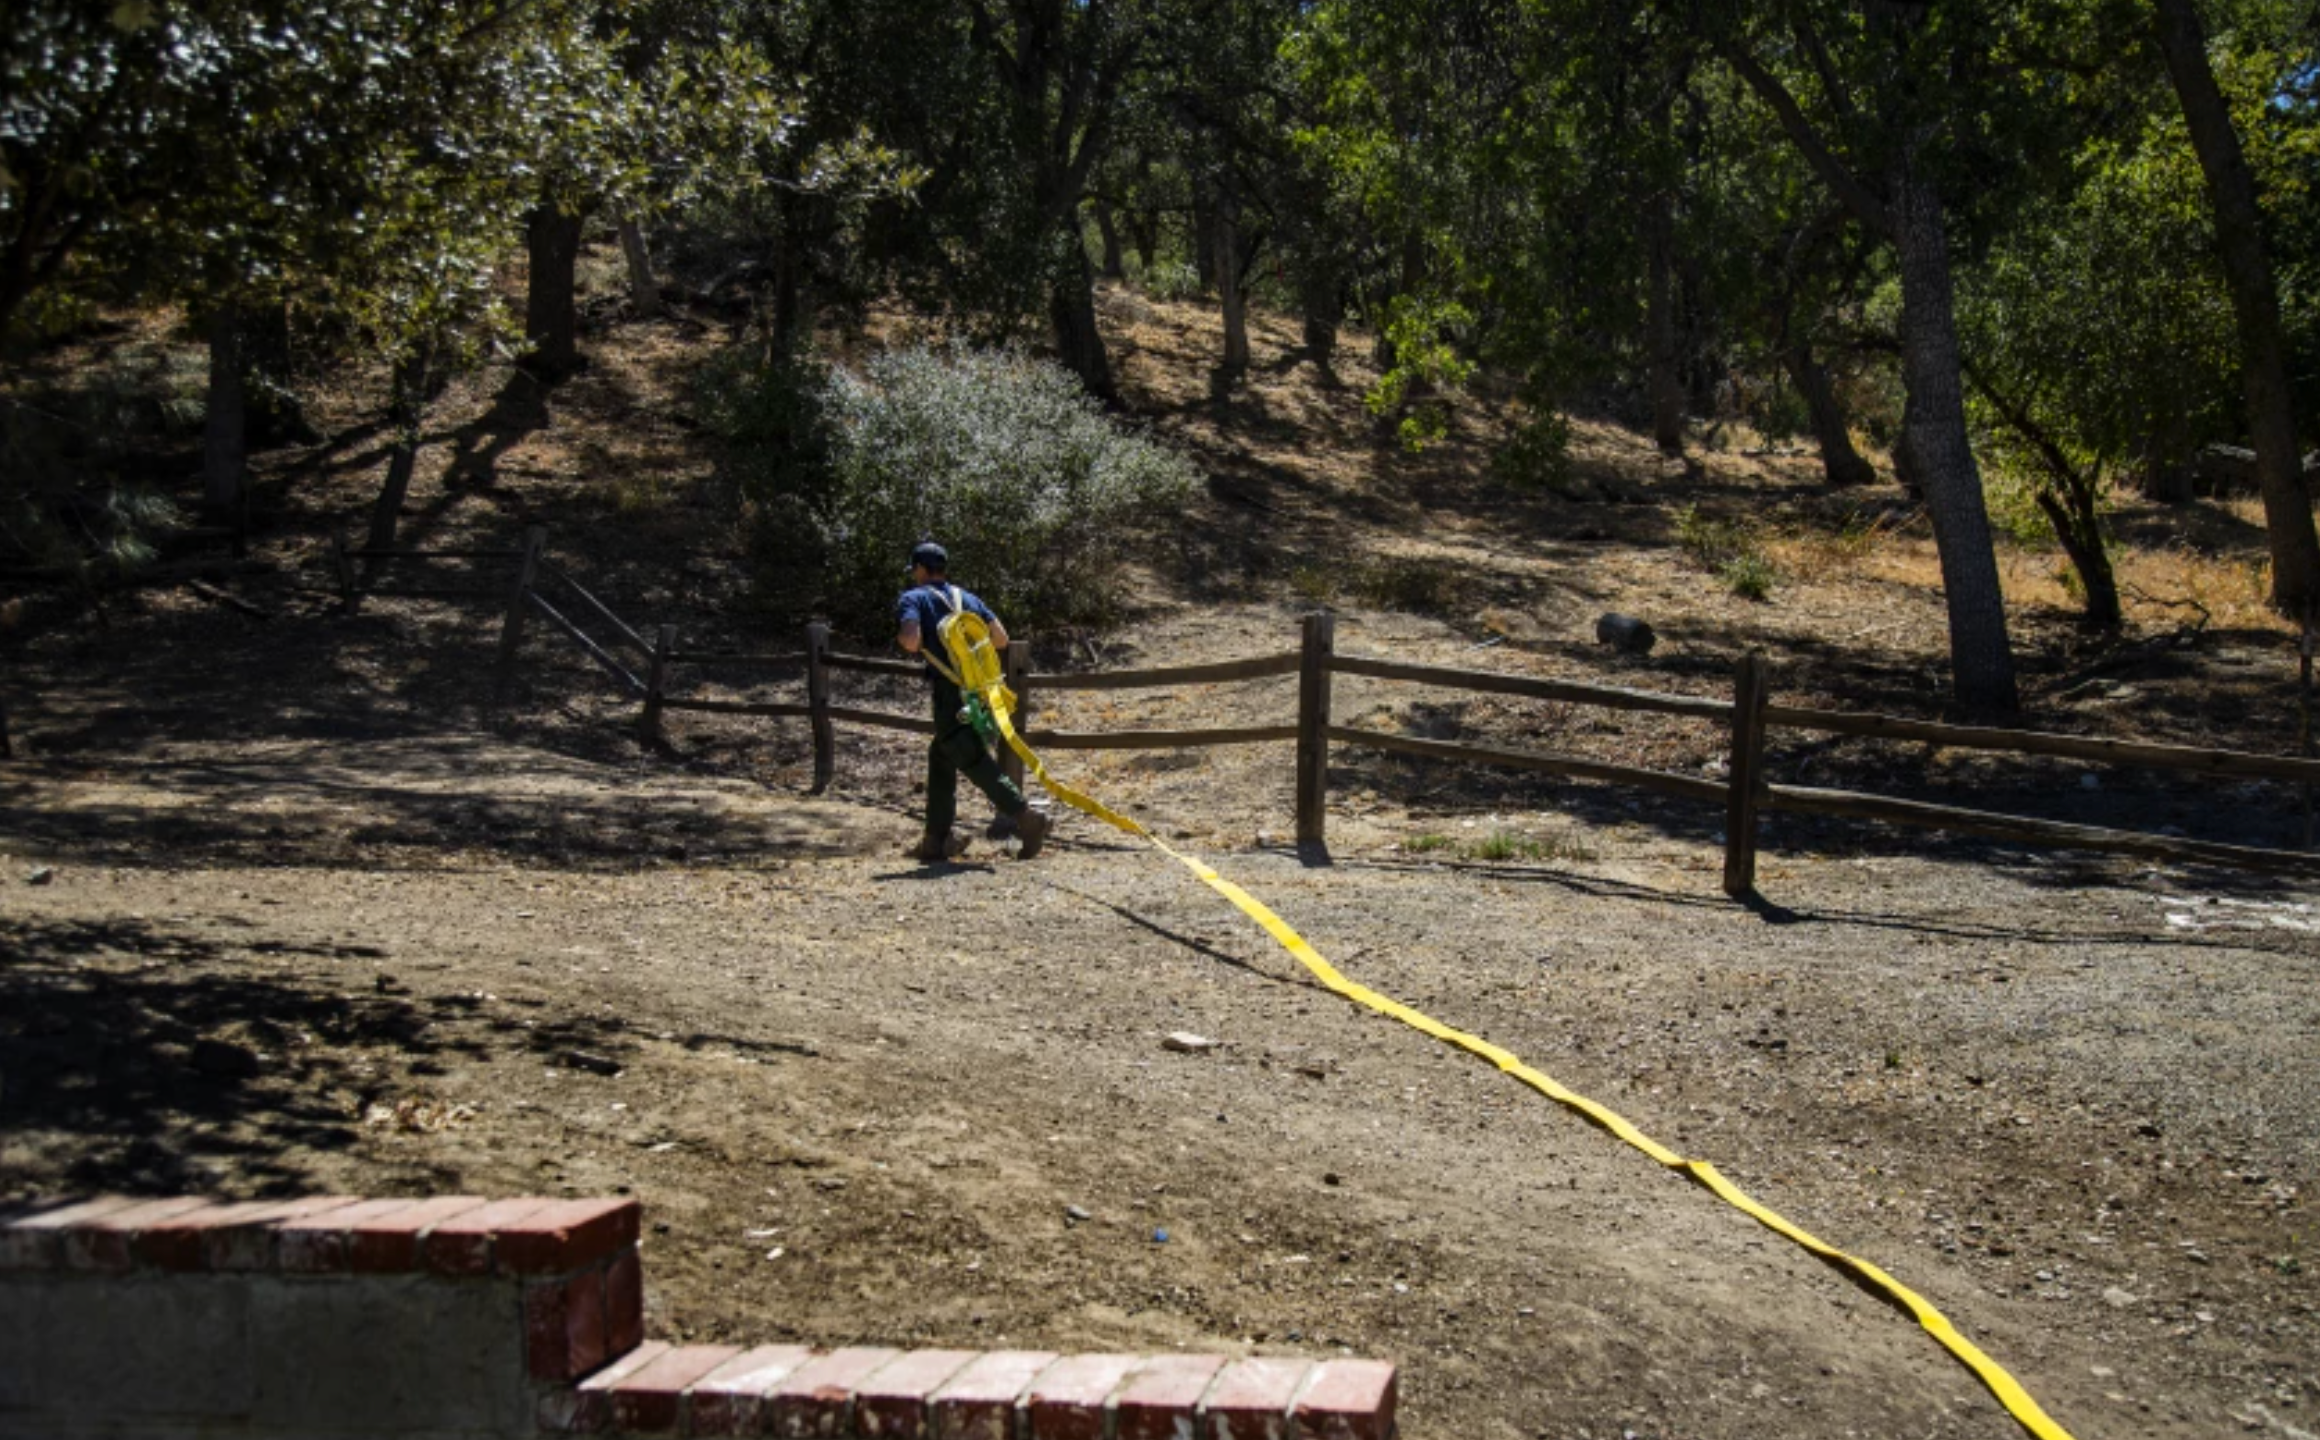 """U.S. Forest Service firefighter Nick Browne deploys a fire hose pack during training in Castaic. Crews in the bone-dry forest must aim for 100% mop-up, meaning they must extinguish every ember. """"There are no shortcuts here,"""" he said.(Gina Ferazzi / Los Angeles Times)"""